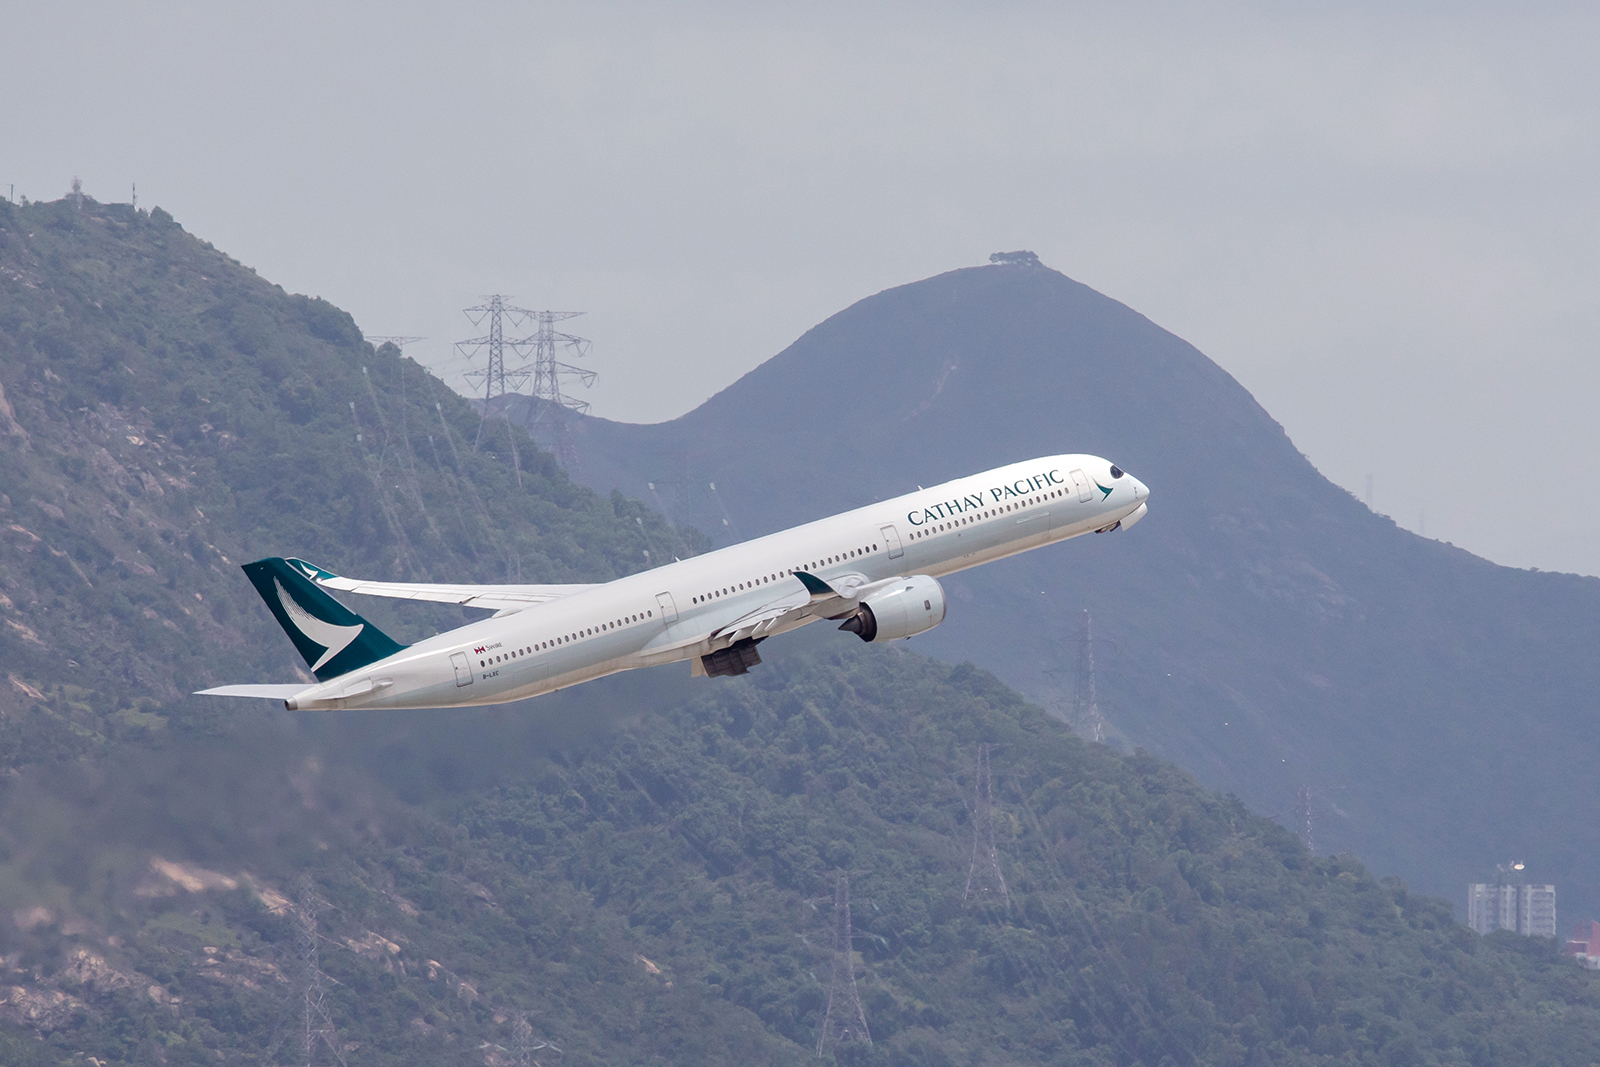 An aircraft operated by Cathay Pacific Airways takes off at Hong Kong International Airport on August 7.